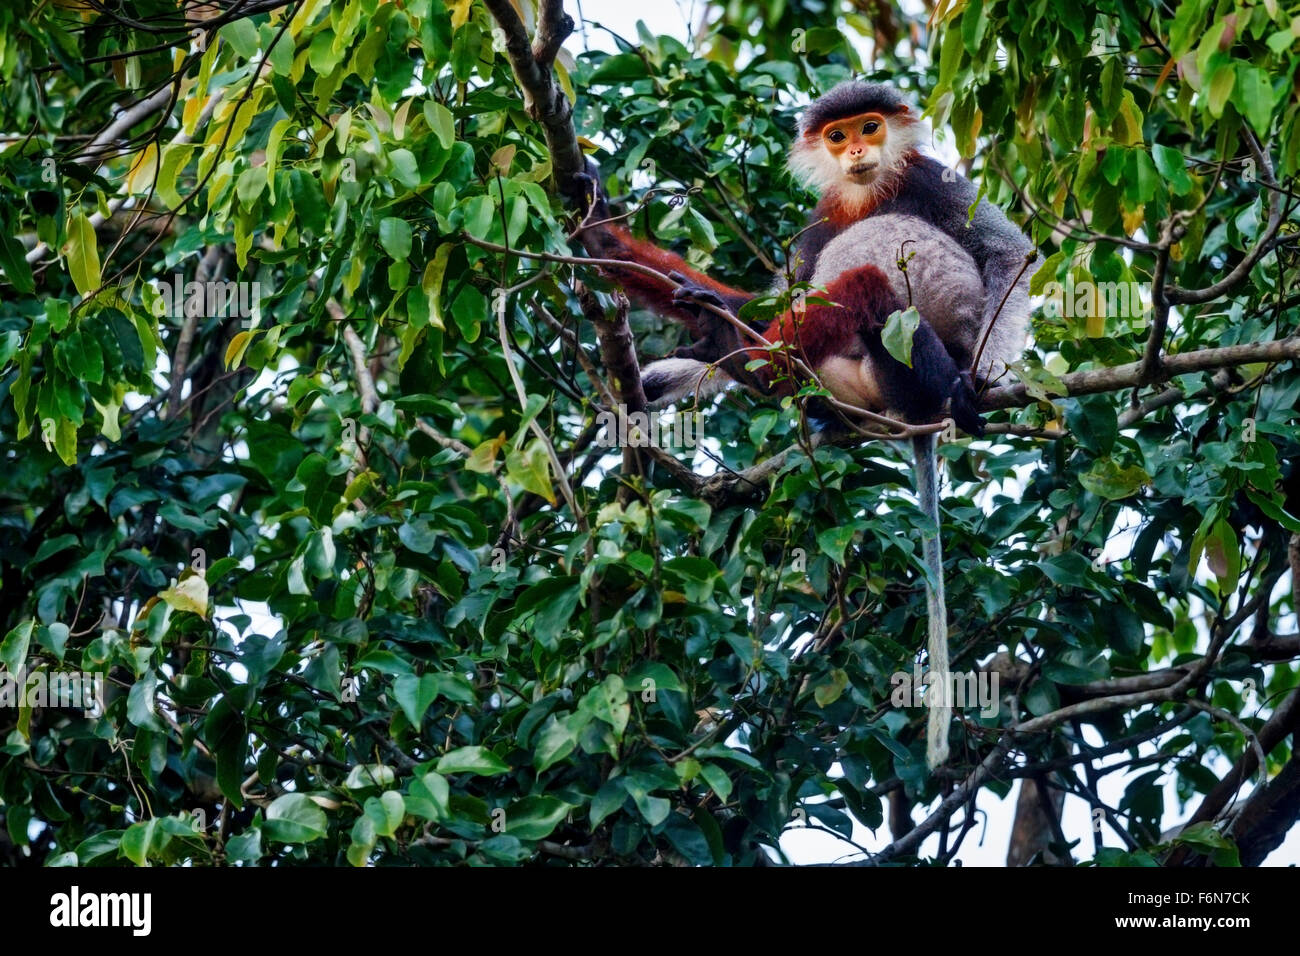 Red-shanked douc feeding in the canopy at Son Tra nature reserve in Vietnam - Stock Image